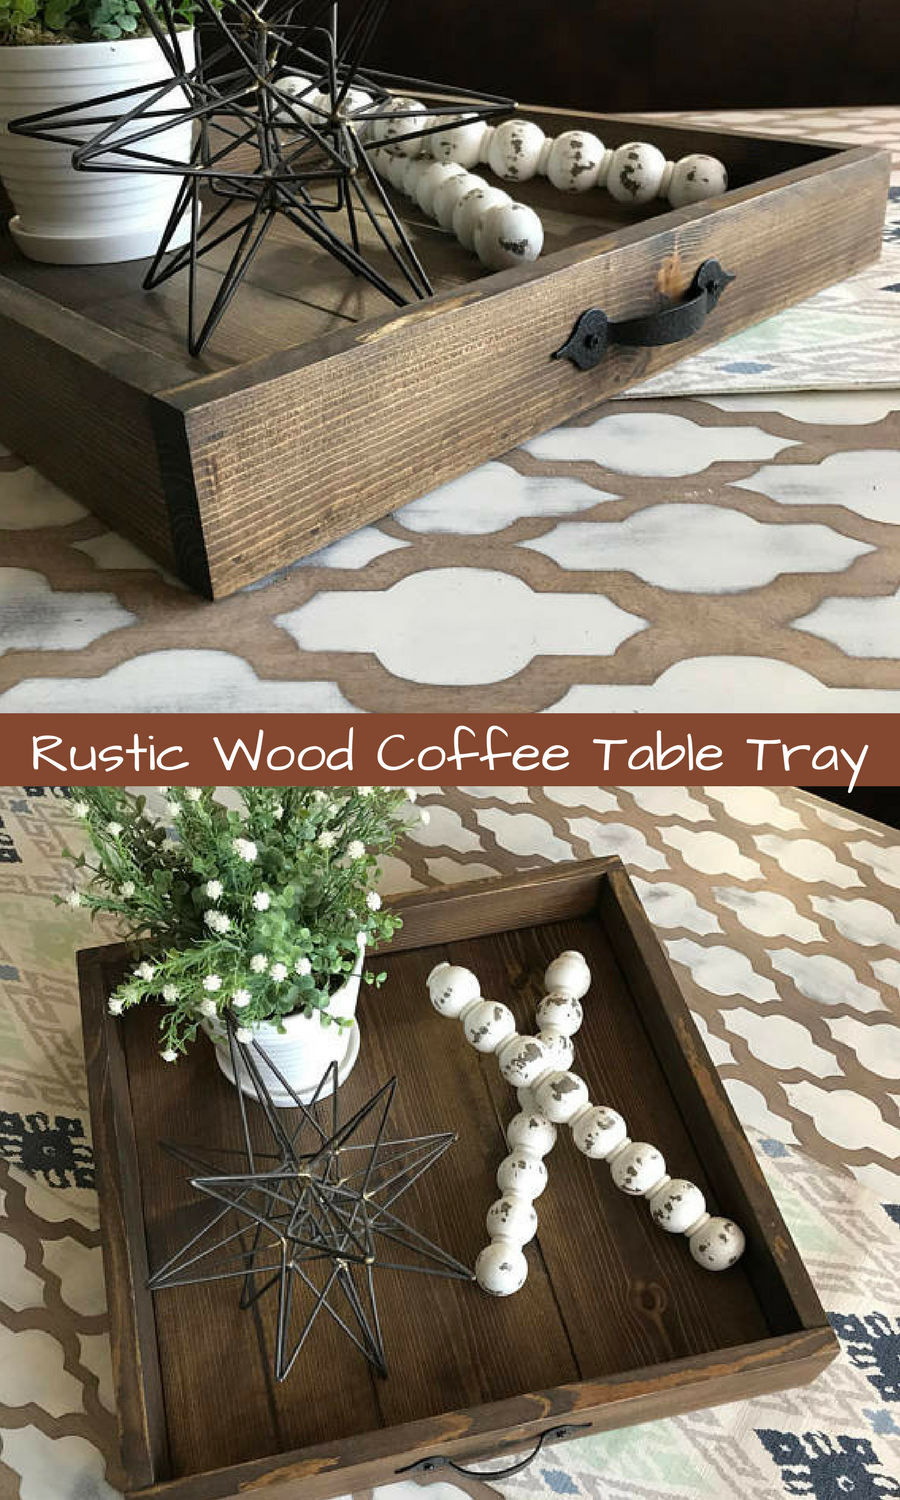 Rustic Wood Coffee Table Tray Home Decor Ottoman Serving